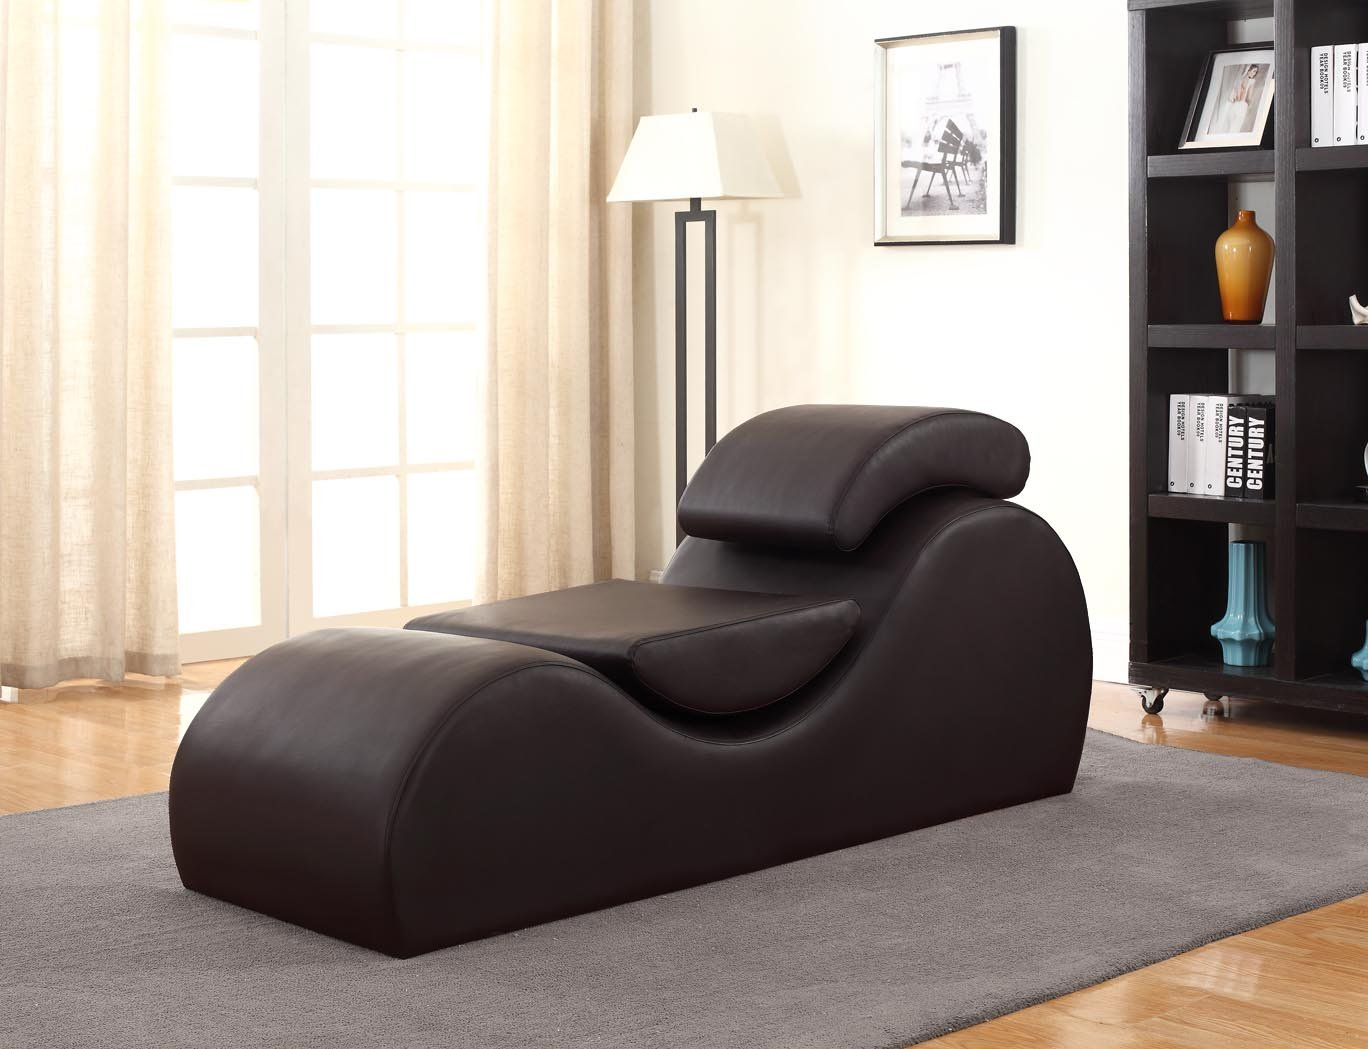 Container Furniture Direct Devon Collection Modern Faux Leather Upholstered Stretch and Relaxation Living Room Chaise Lounge, Dark Brown CL-14